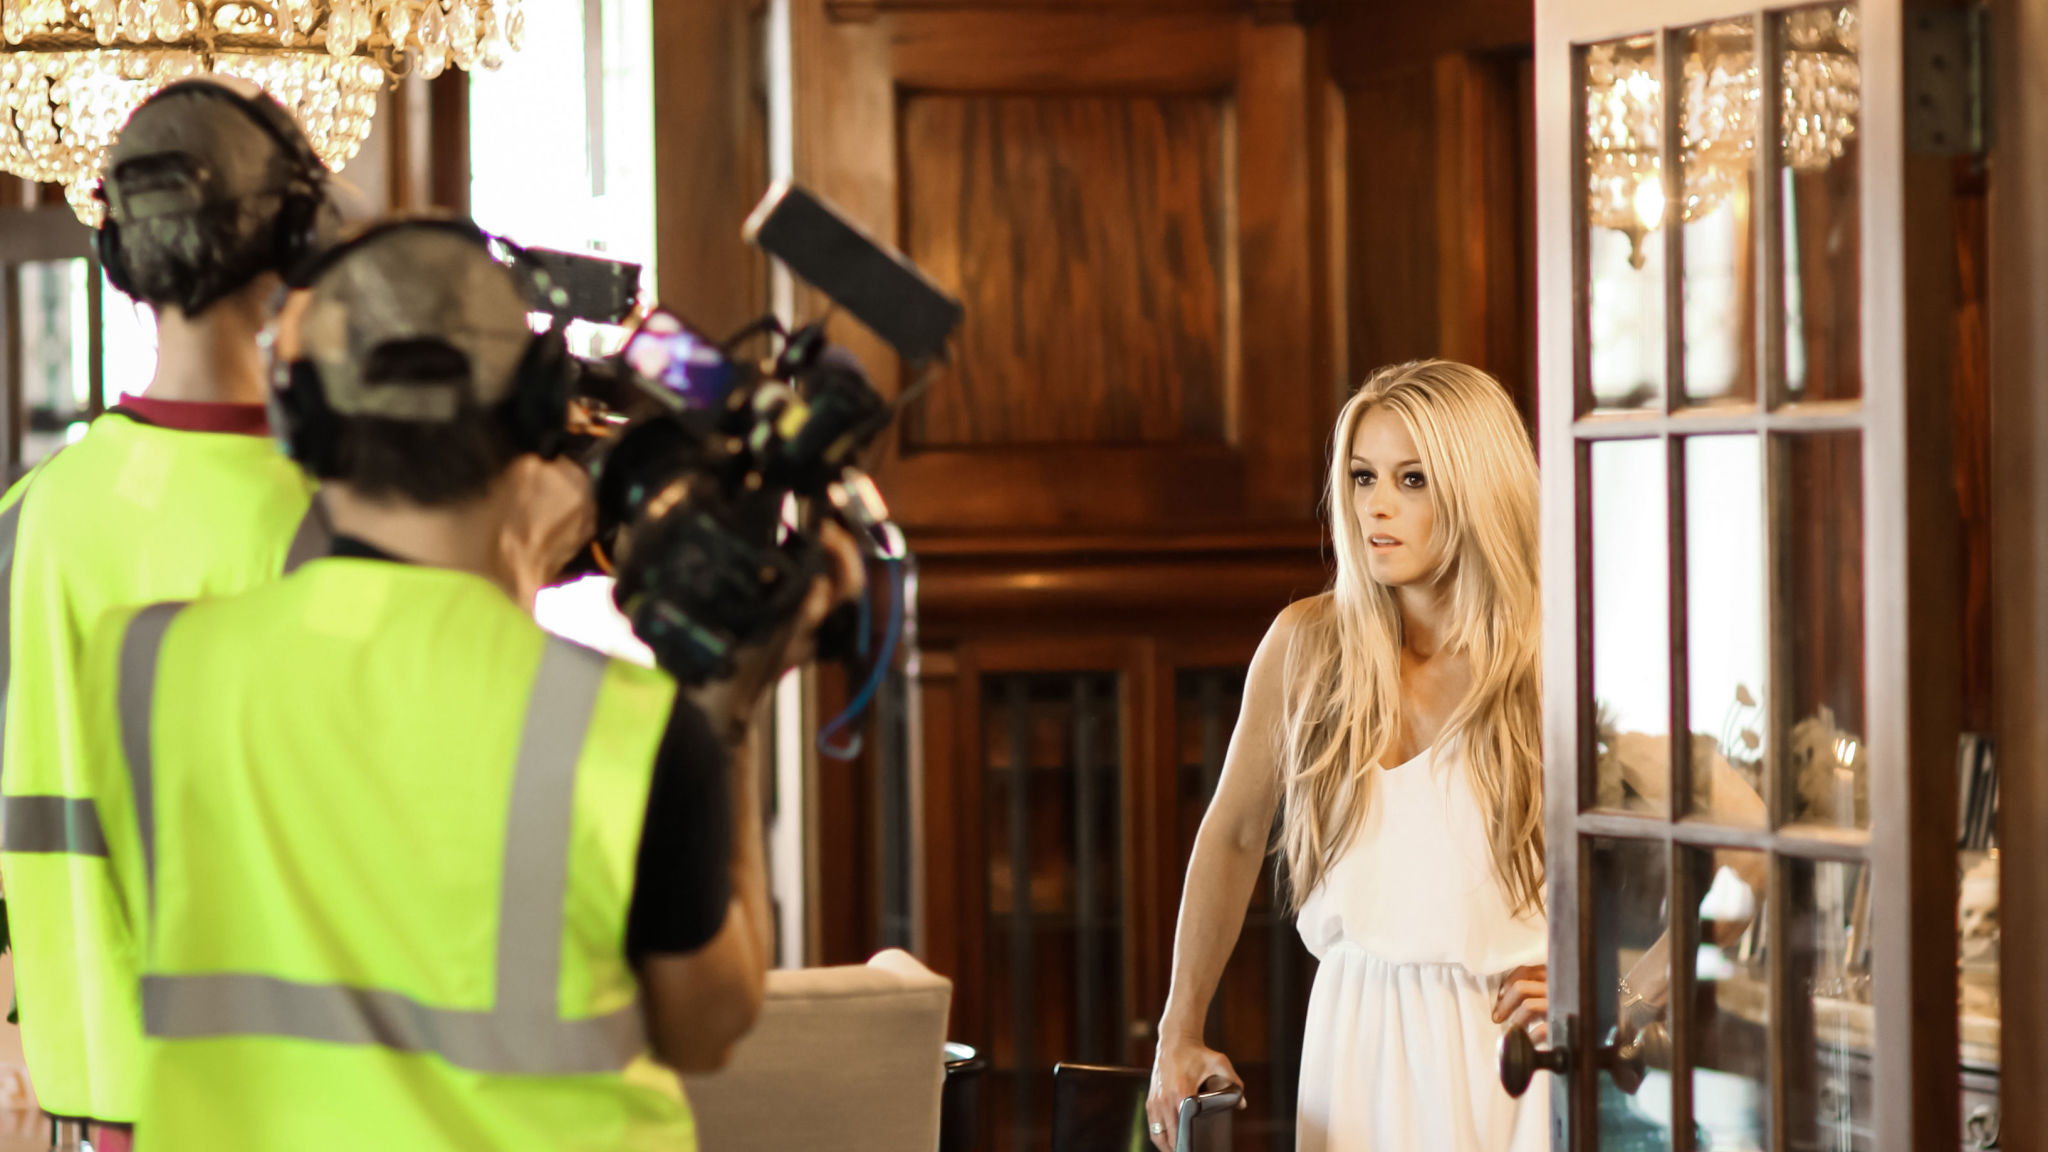 nicole curtis wants you to know her life is not perfect - Rehab Addict Hgtv